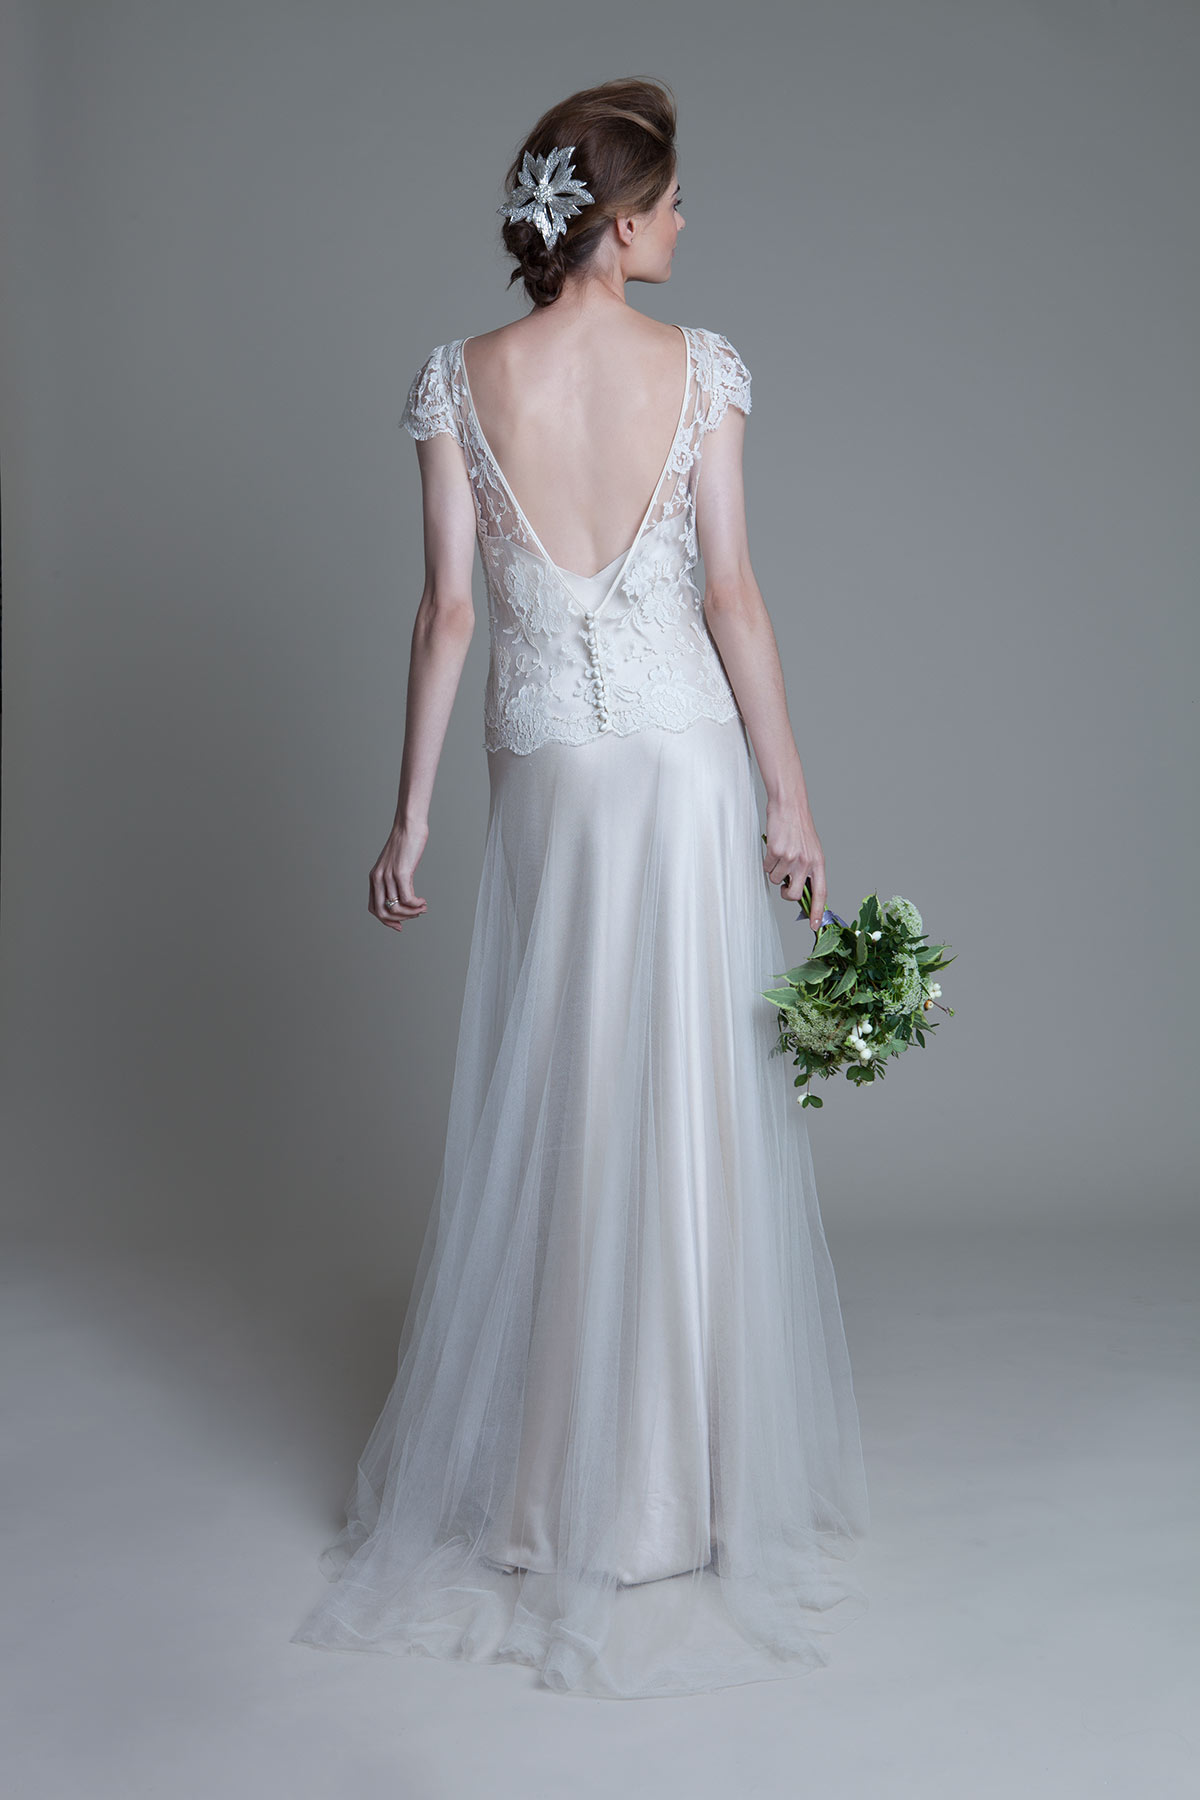 Back view of the Iris Classic with cap lace sleeves tulle skirt and Iris crepe backed satin slip by Halfpenny London